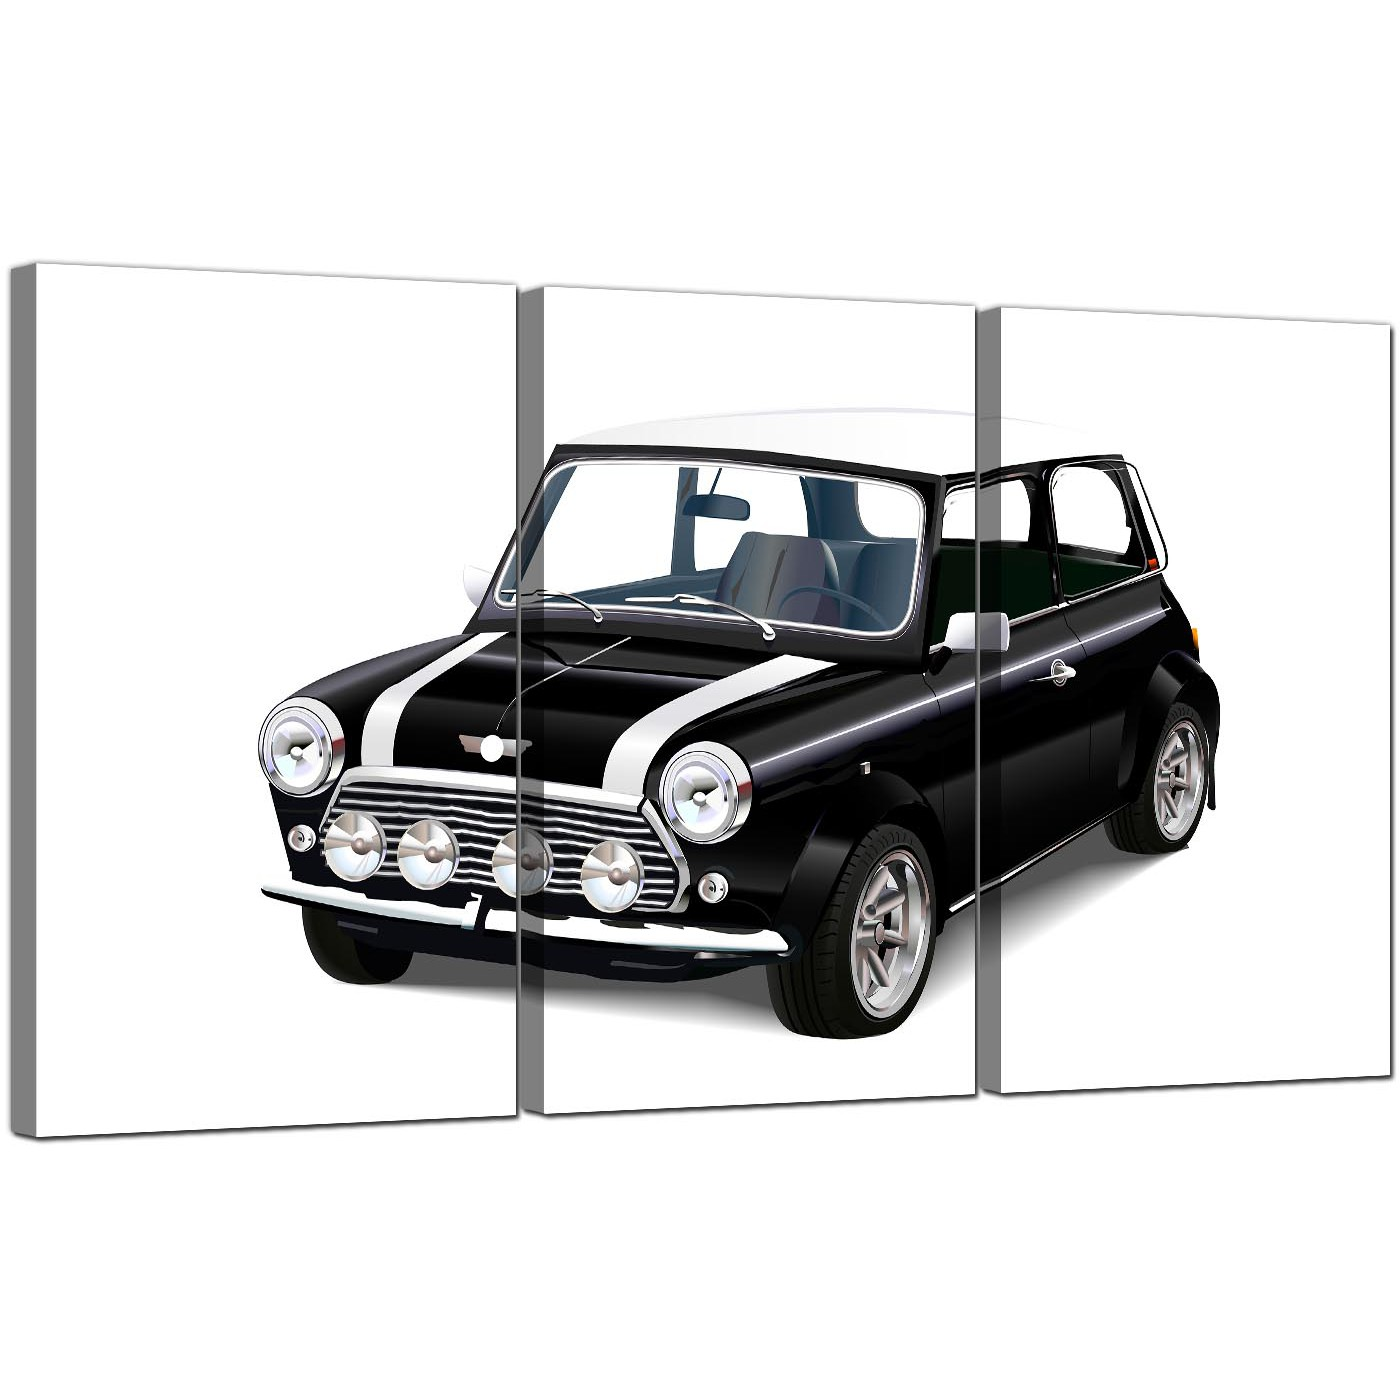 display gallery item 5 3 part automobile canvas wall art mini cooper car 3095 display gallery item 6